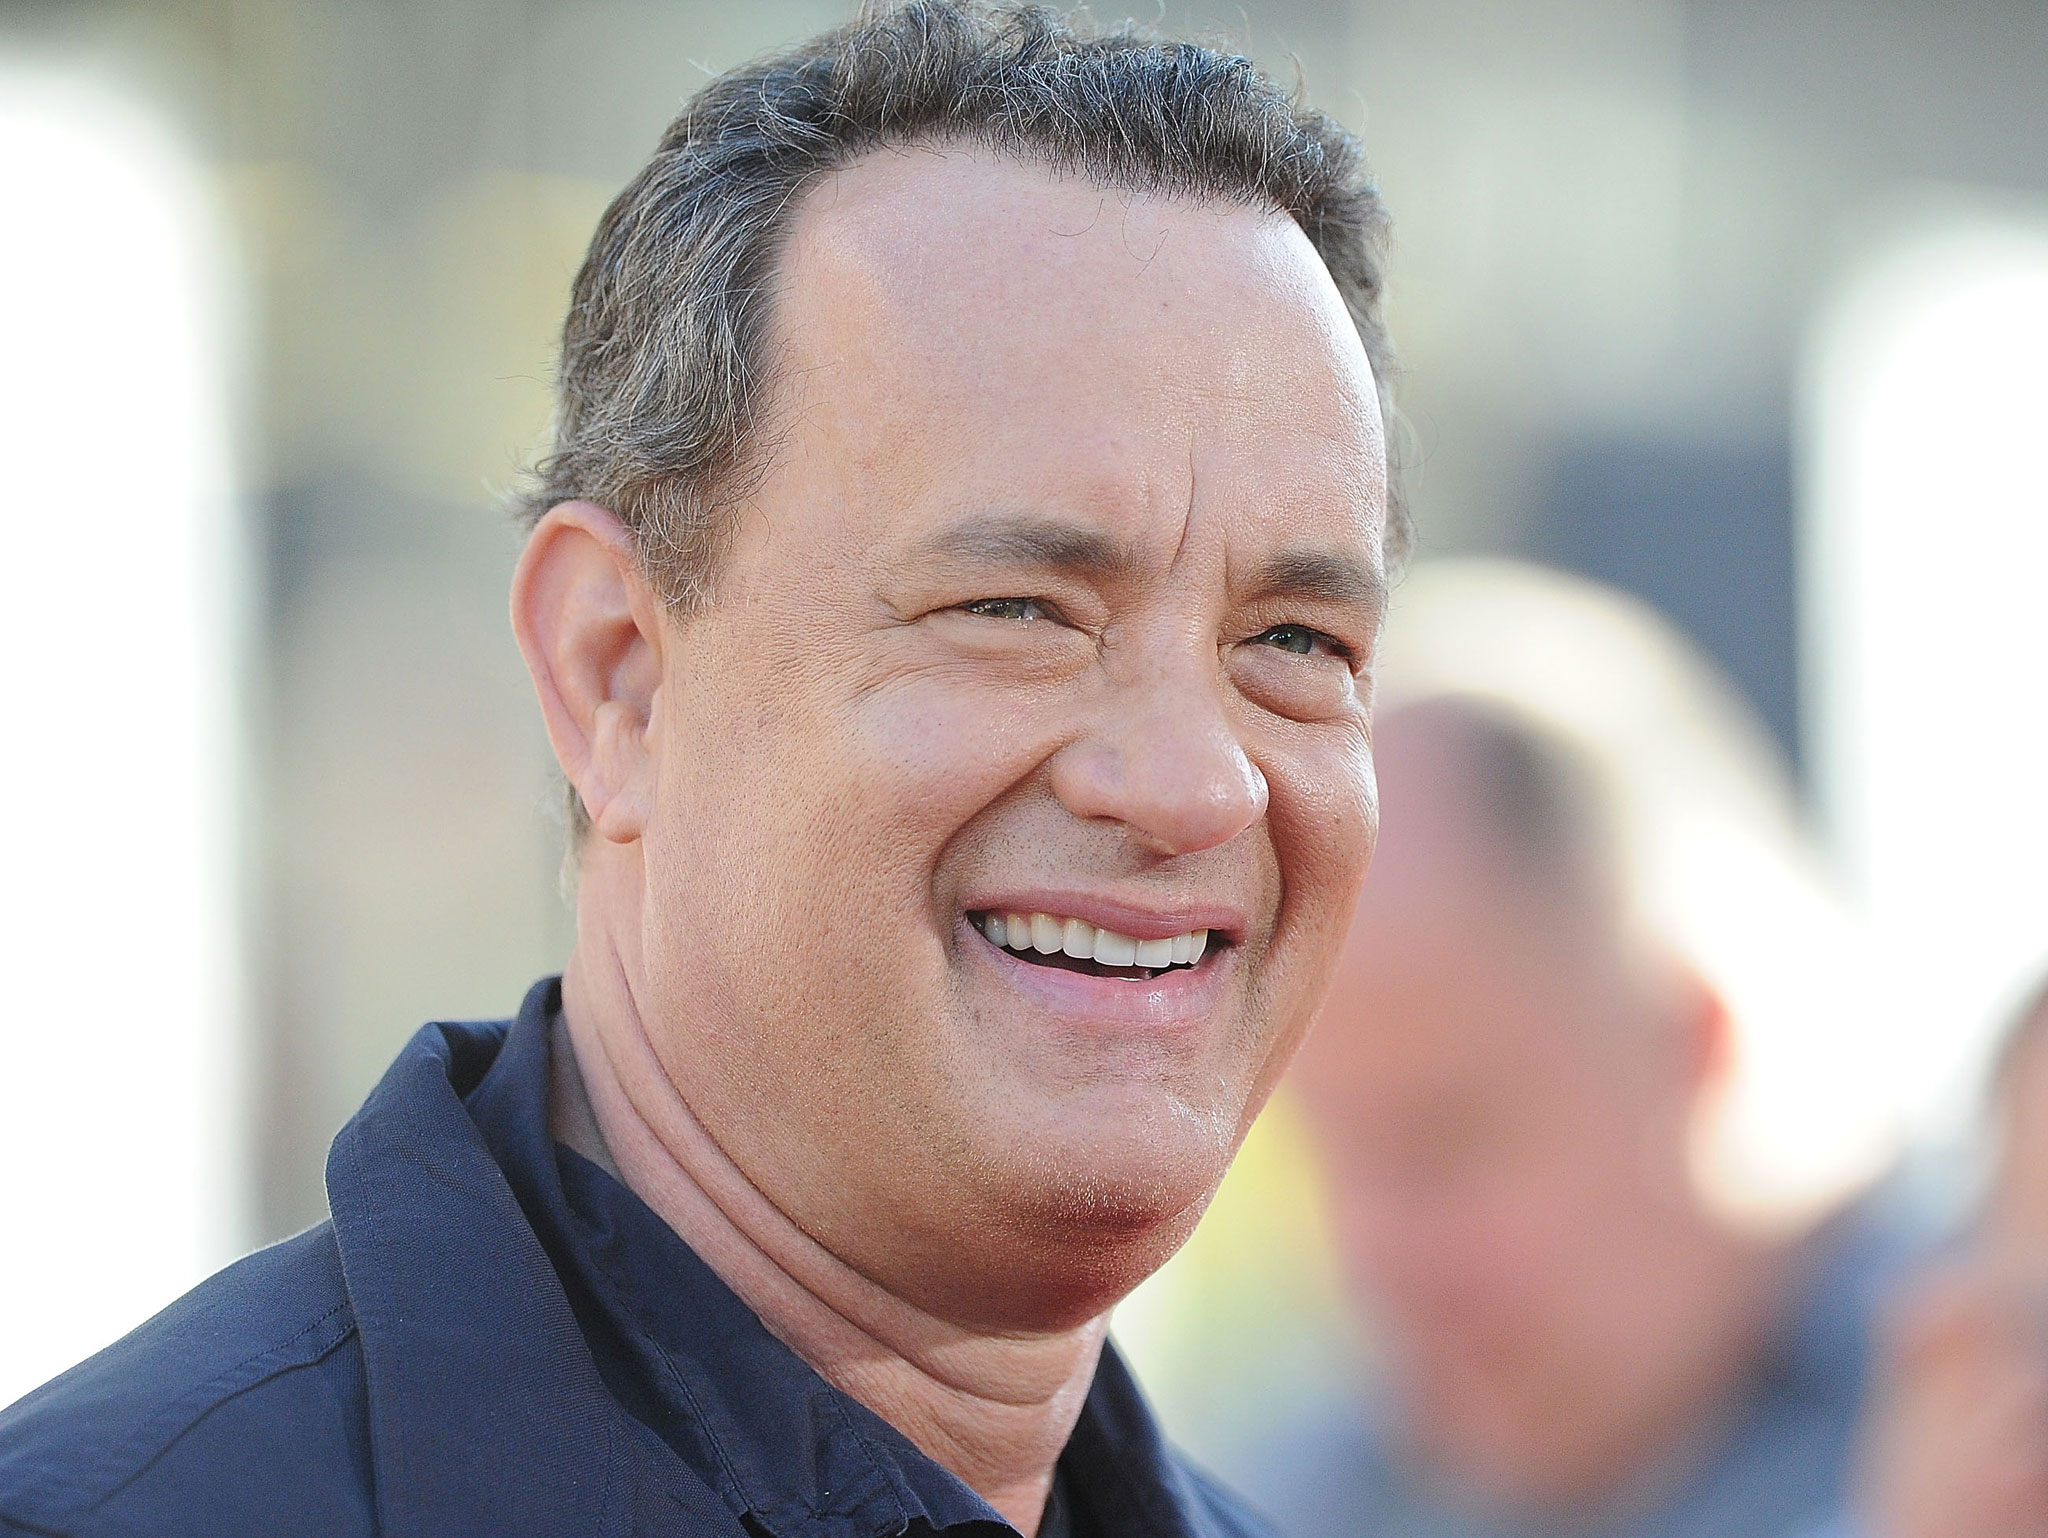 Tom Hanks Widescreen for desktop